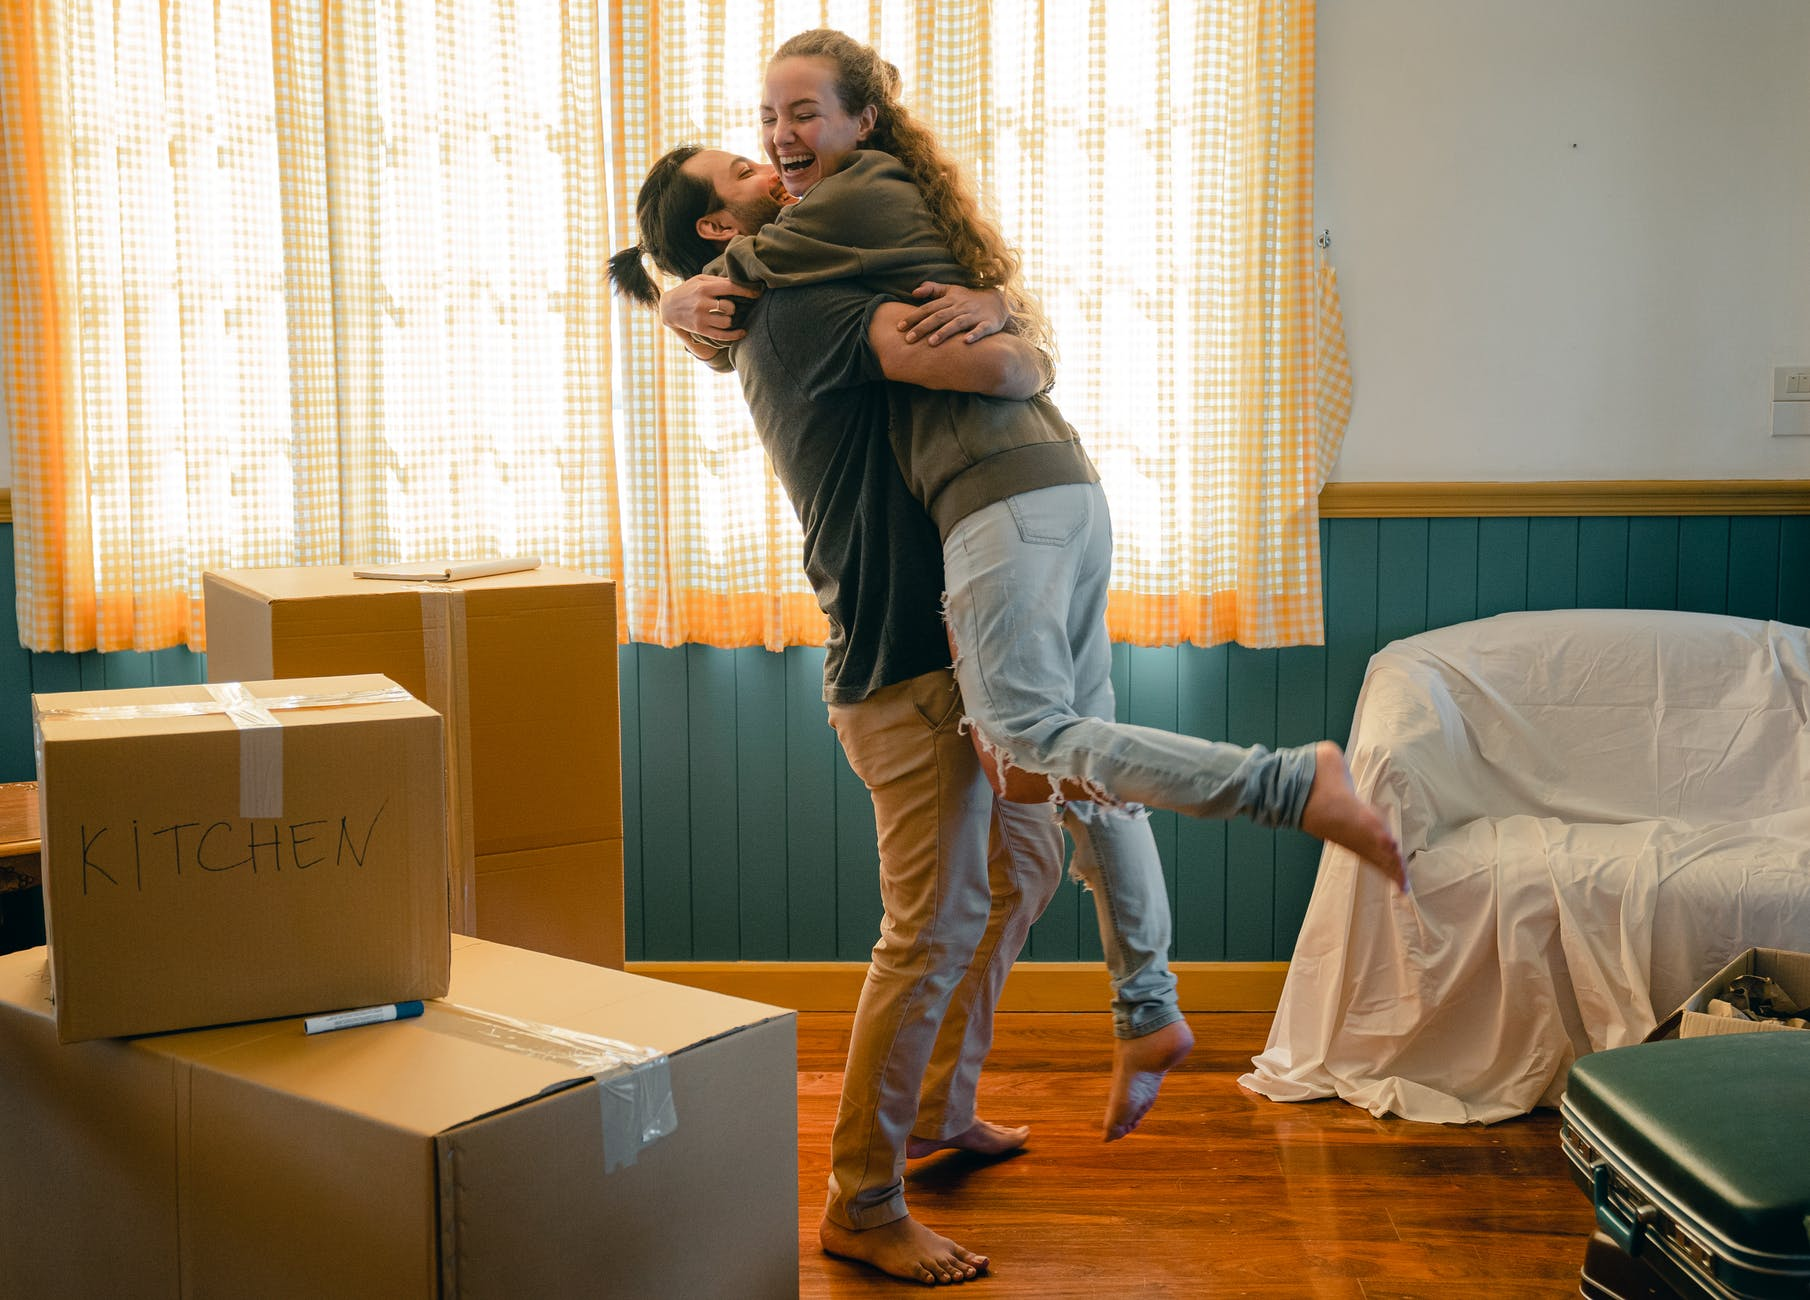 cheerful couple hugging and unpacking carton boxes